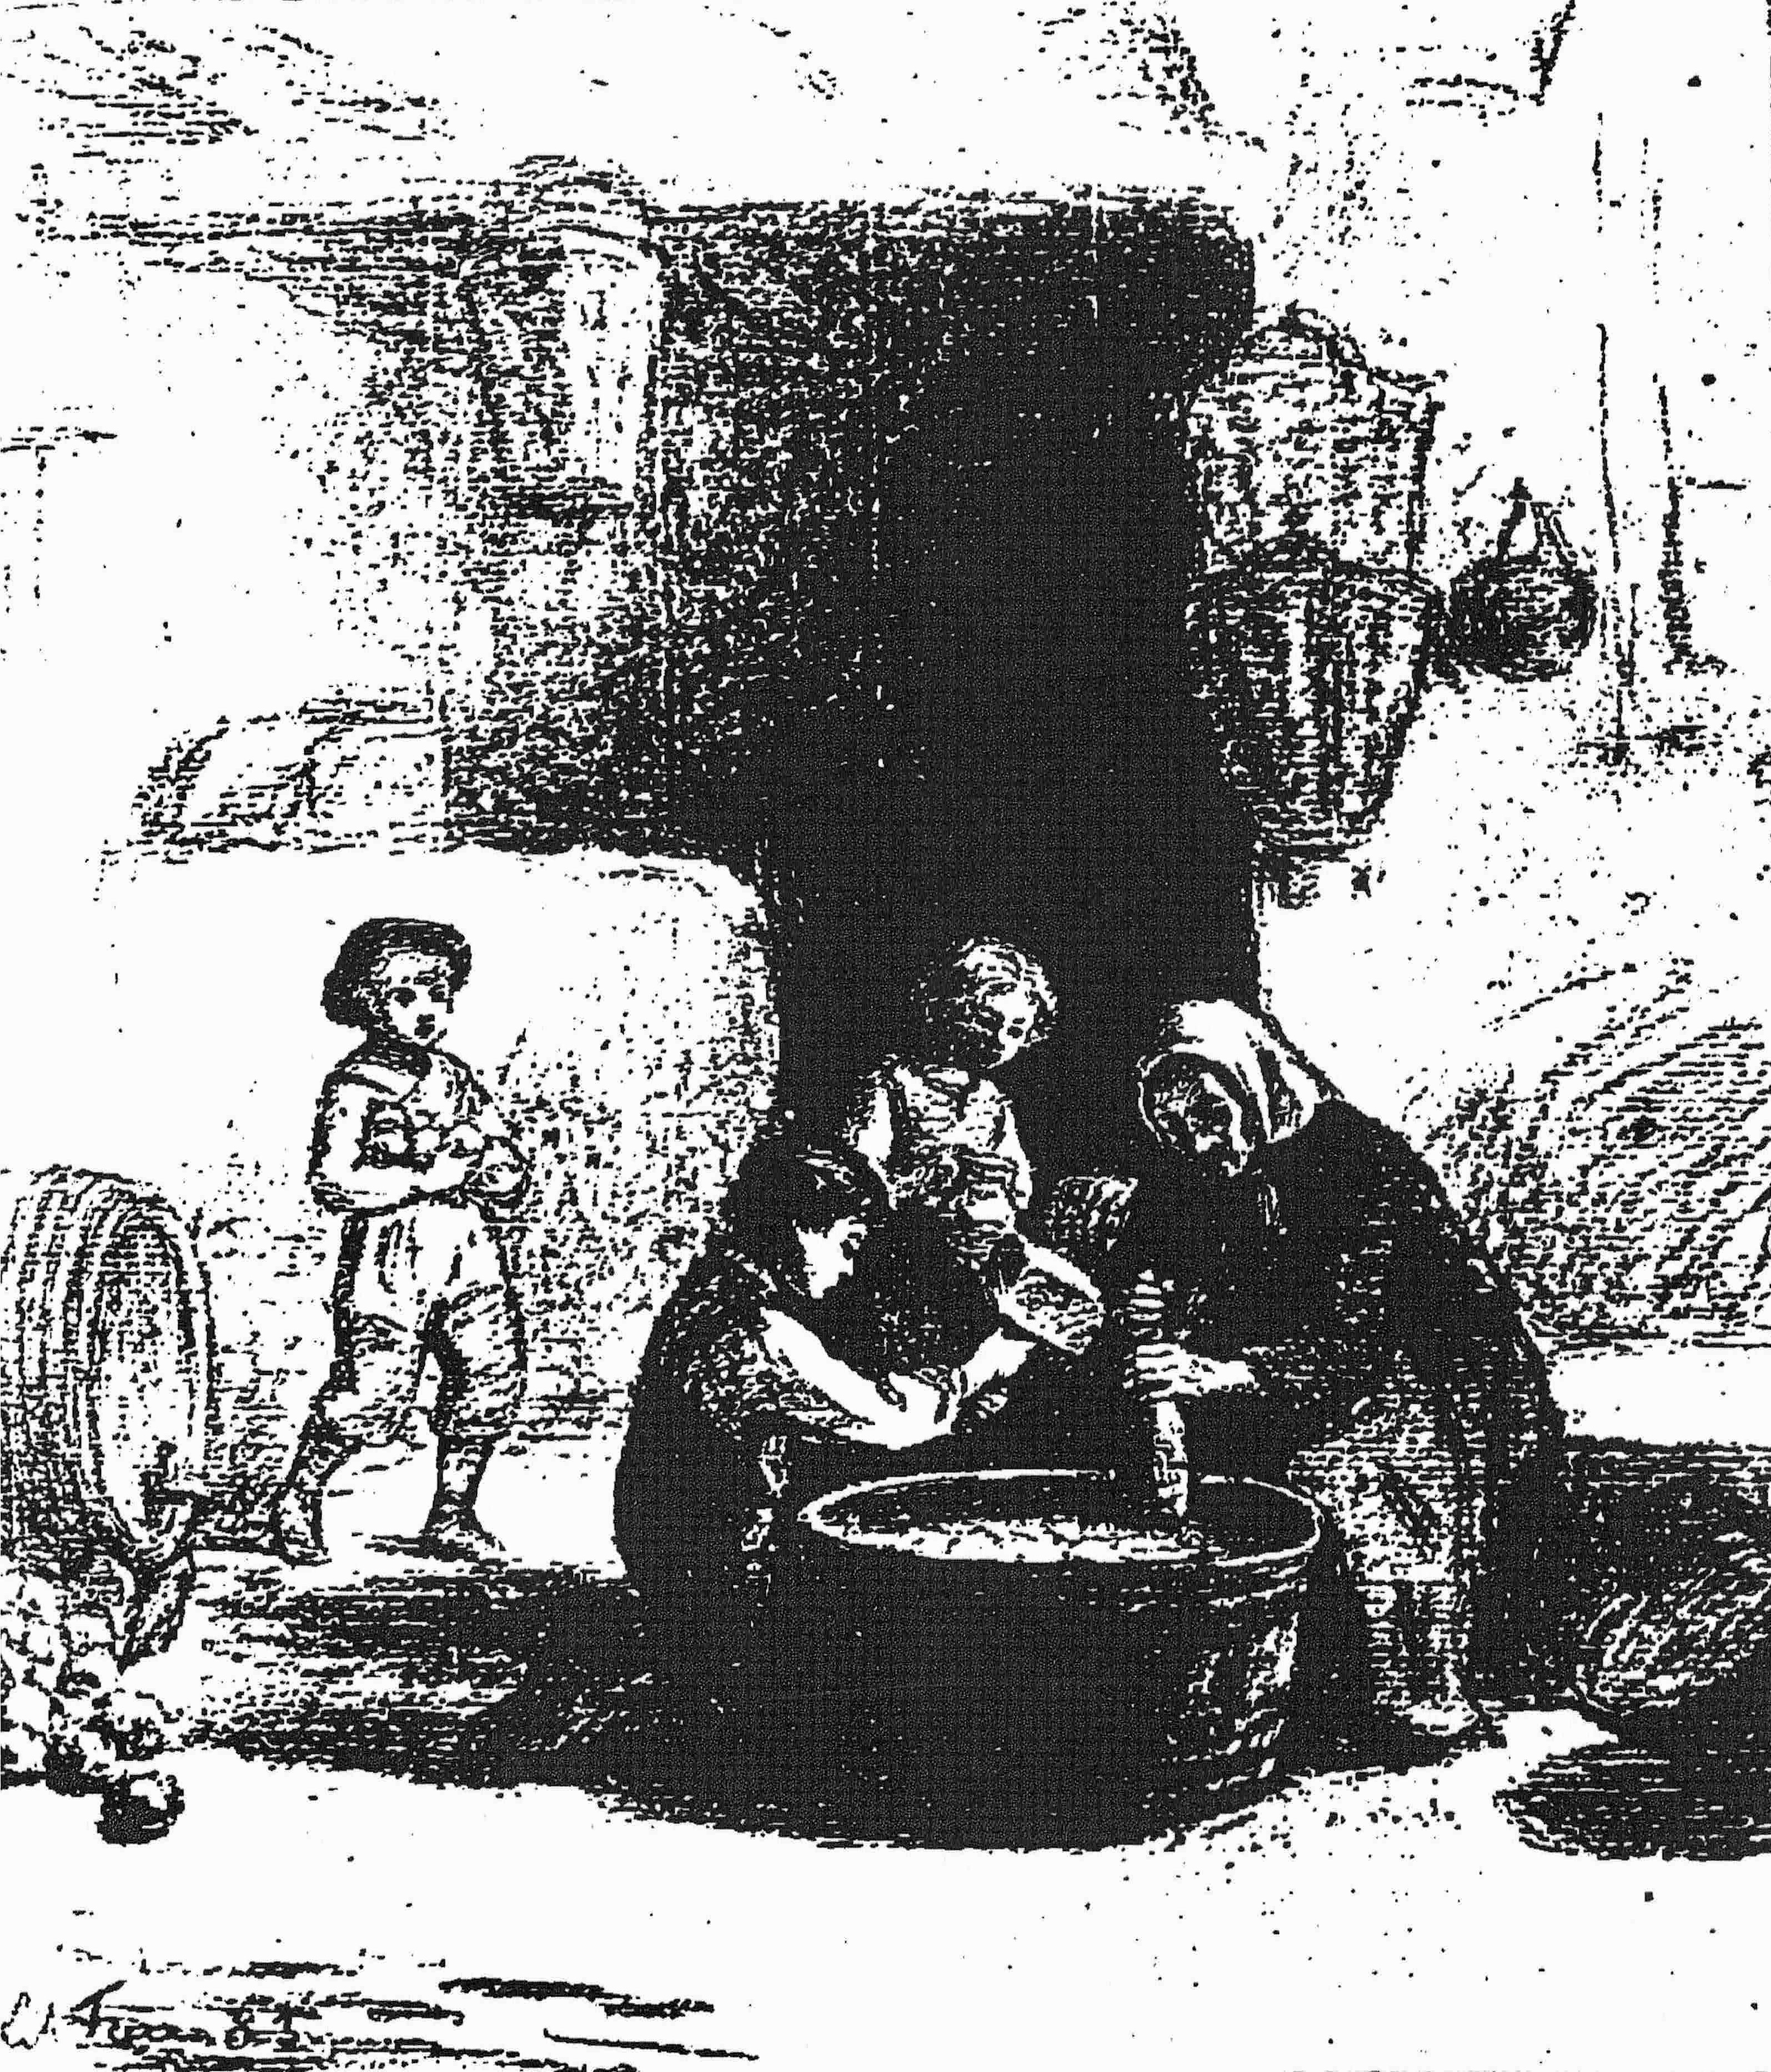 The poor people's cider (Pierre Edouard Frere)